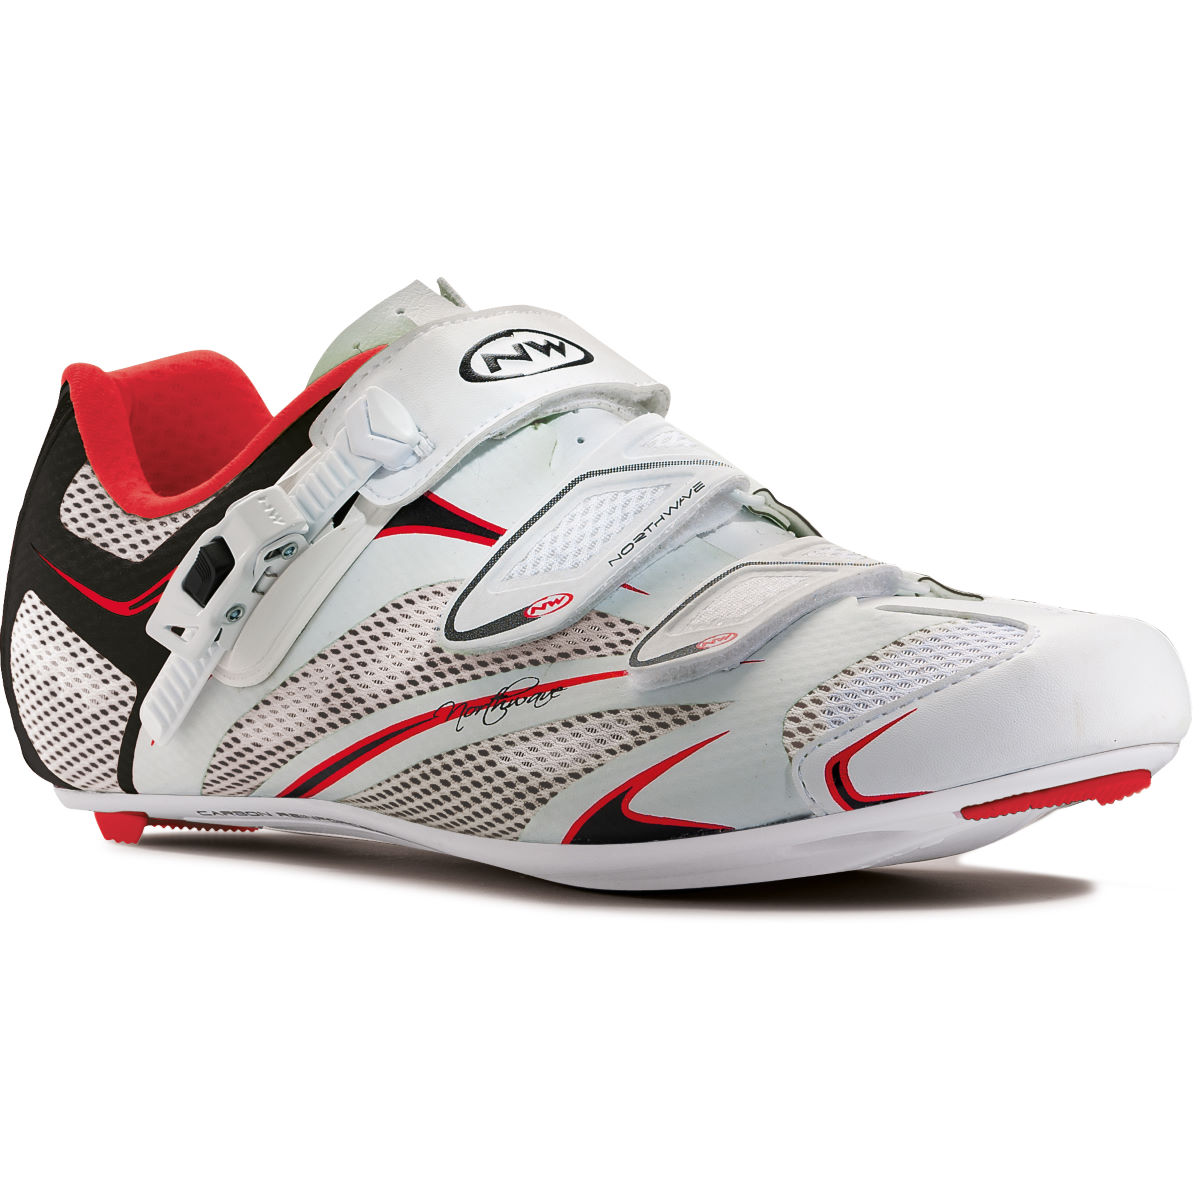 Chaussures de route Femme Northwave Starlight SRS - 36